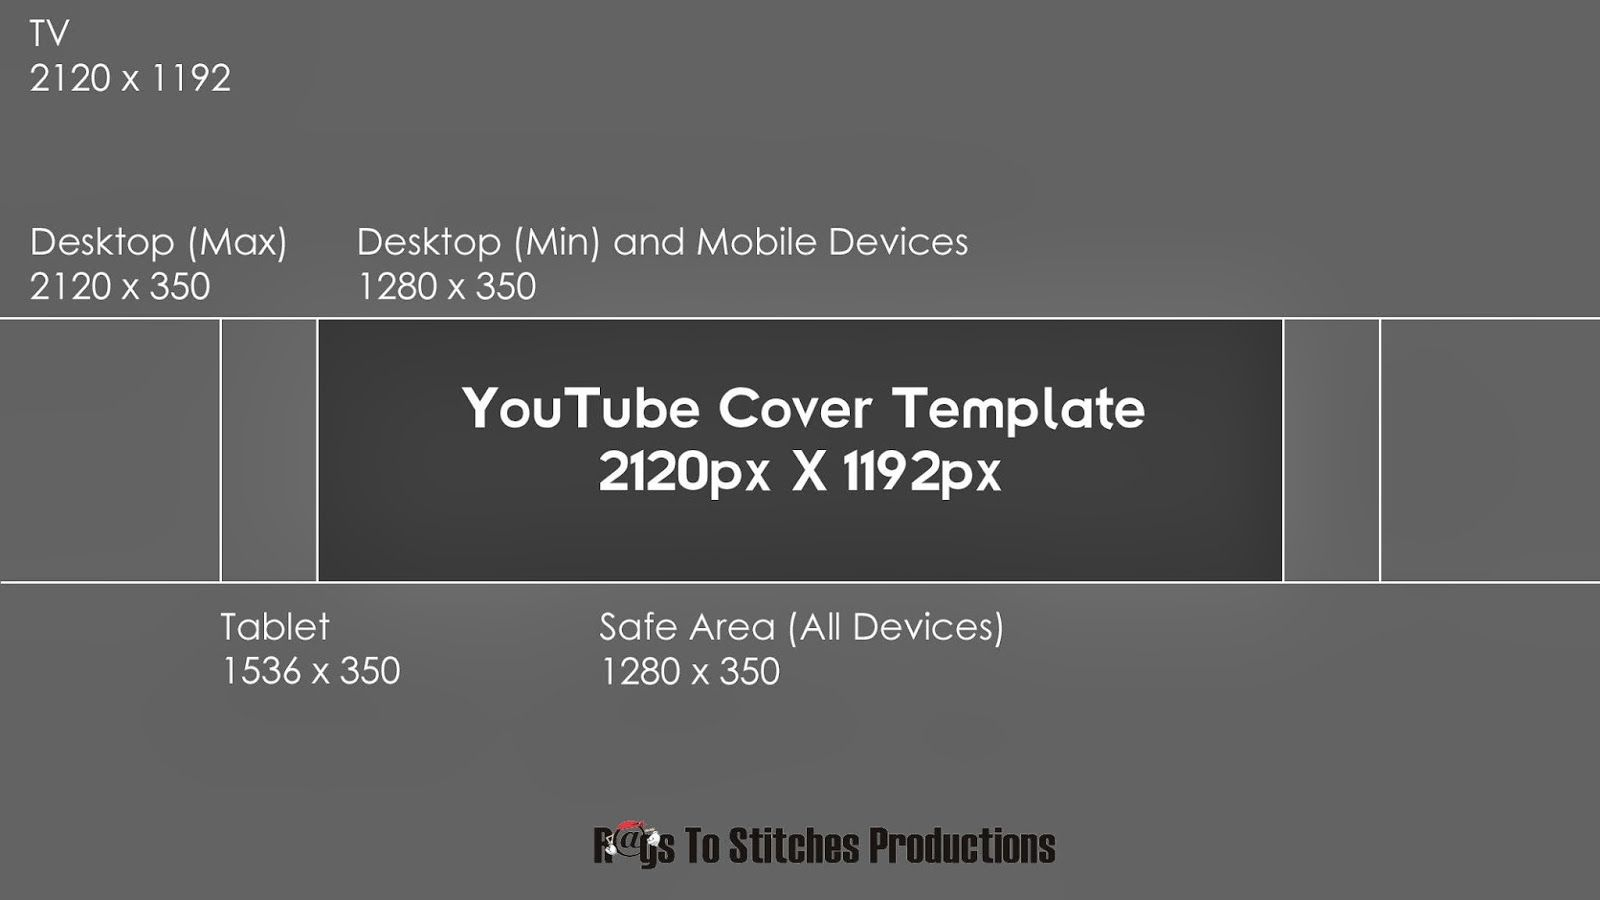 The Glamorous Youtube Banner Template Size Inside Banner Template Word 2010 Digital Photography Below In 2020 Youtube Banner Template Banner Template Youtube Banners